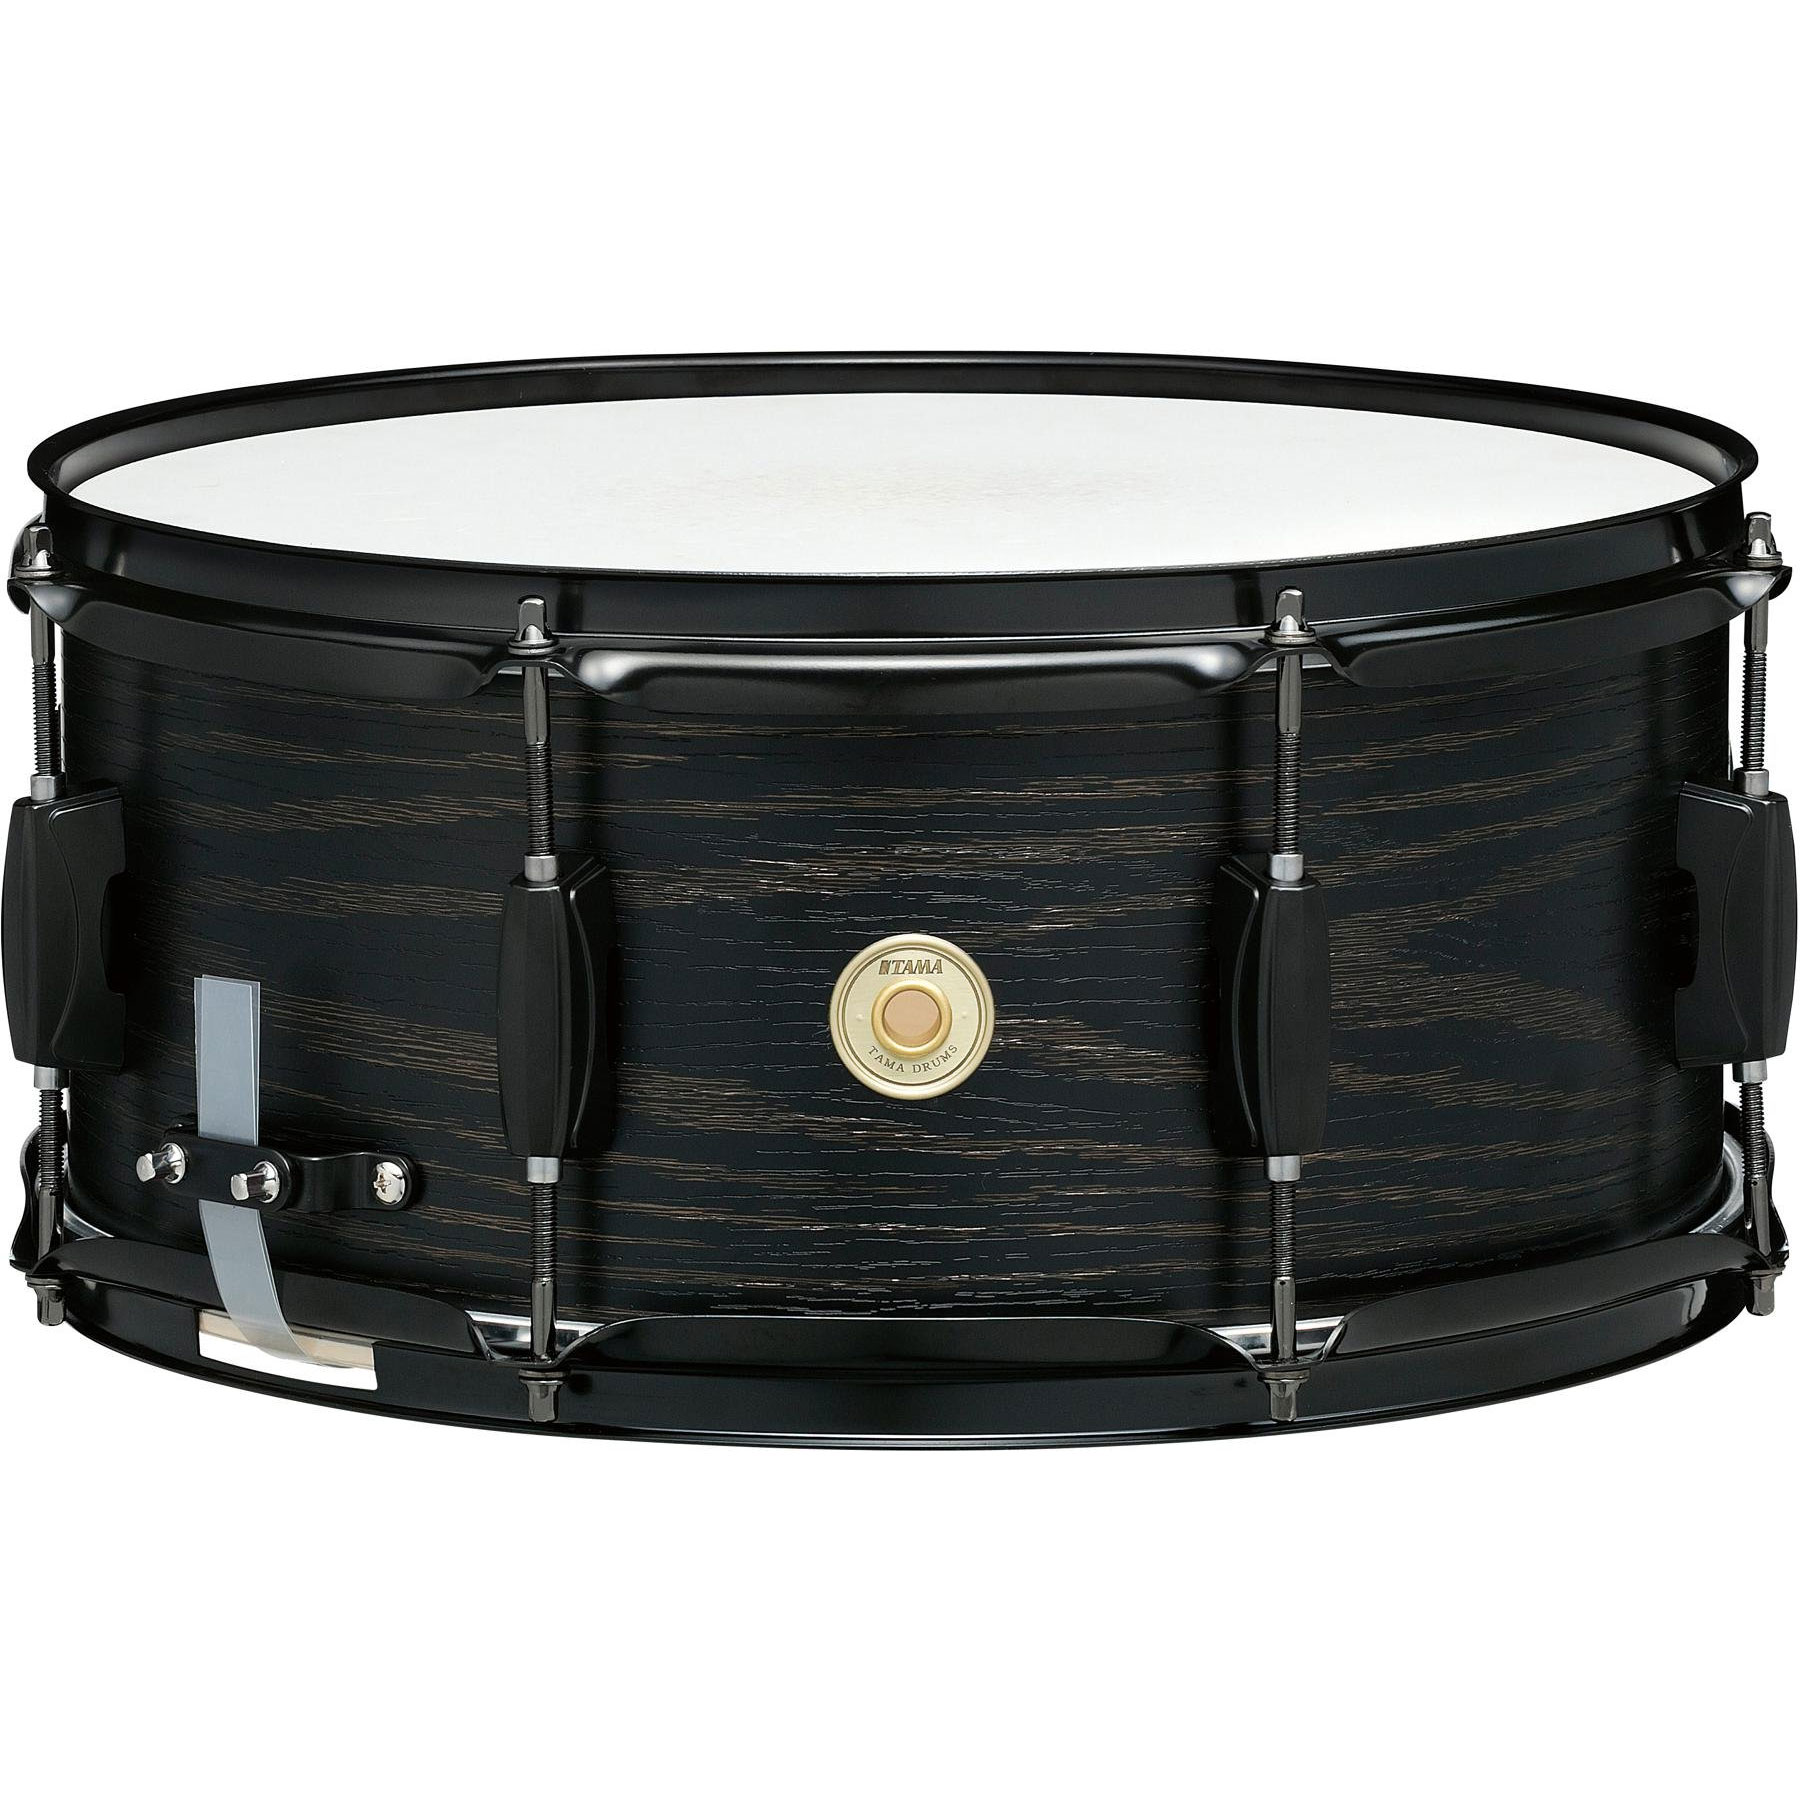 "Tama 6.5"" x 14"" Woodworks Poplar Snare Drum in Black Oak Wrap"